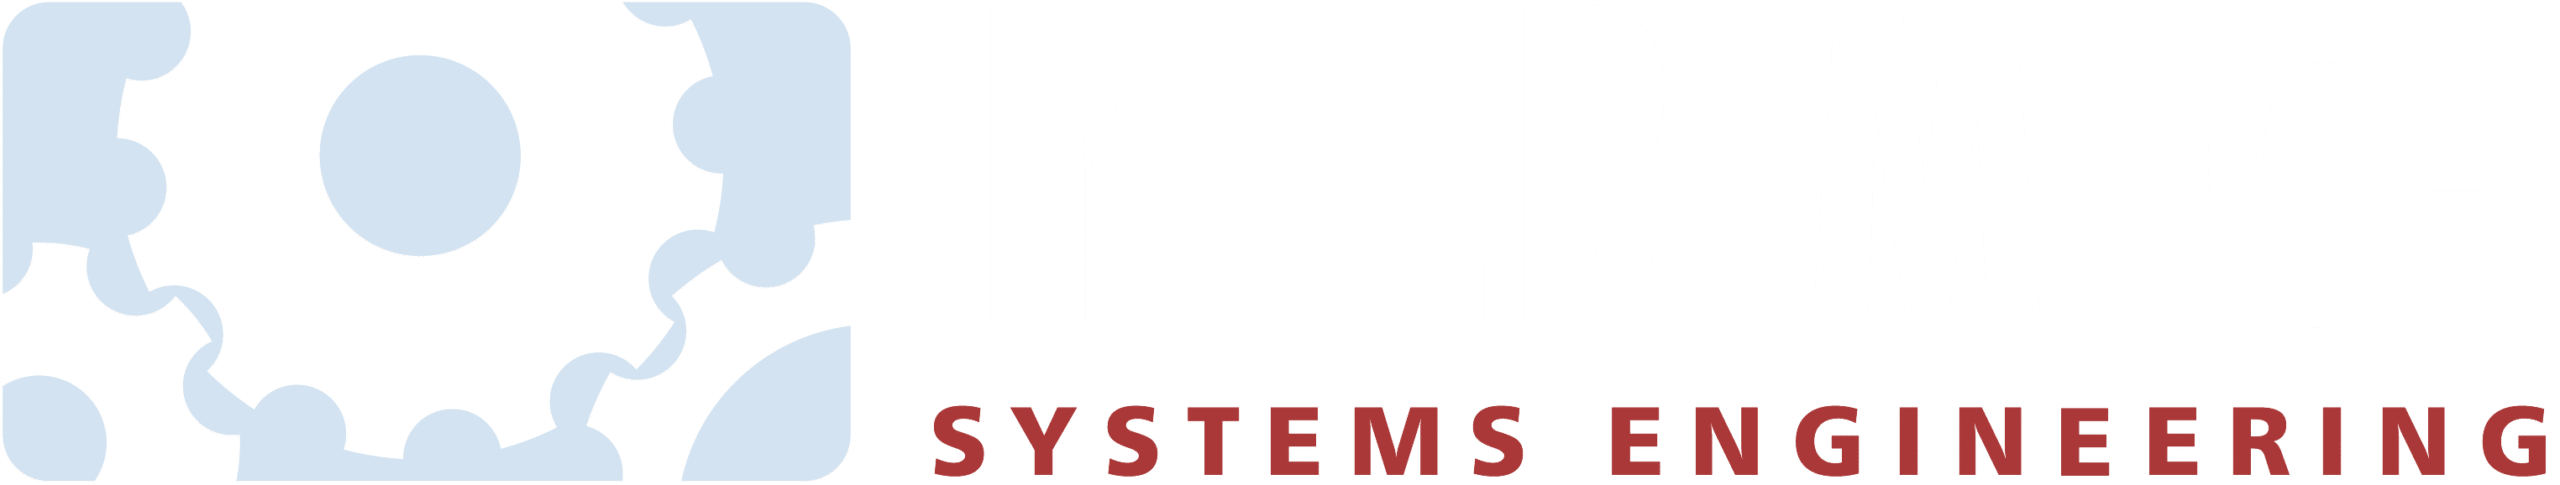 INTER-MECH Systems Engineering